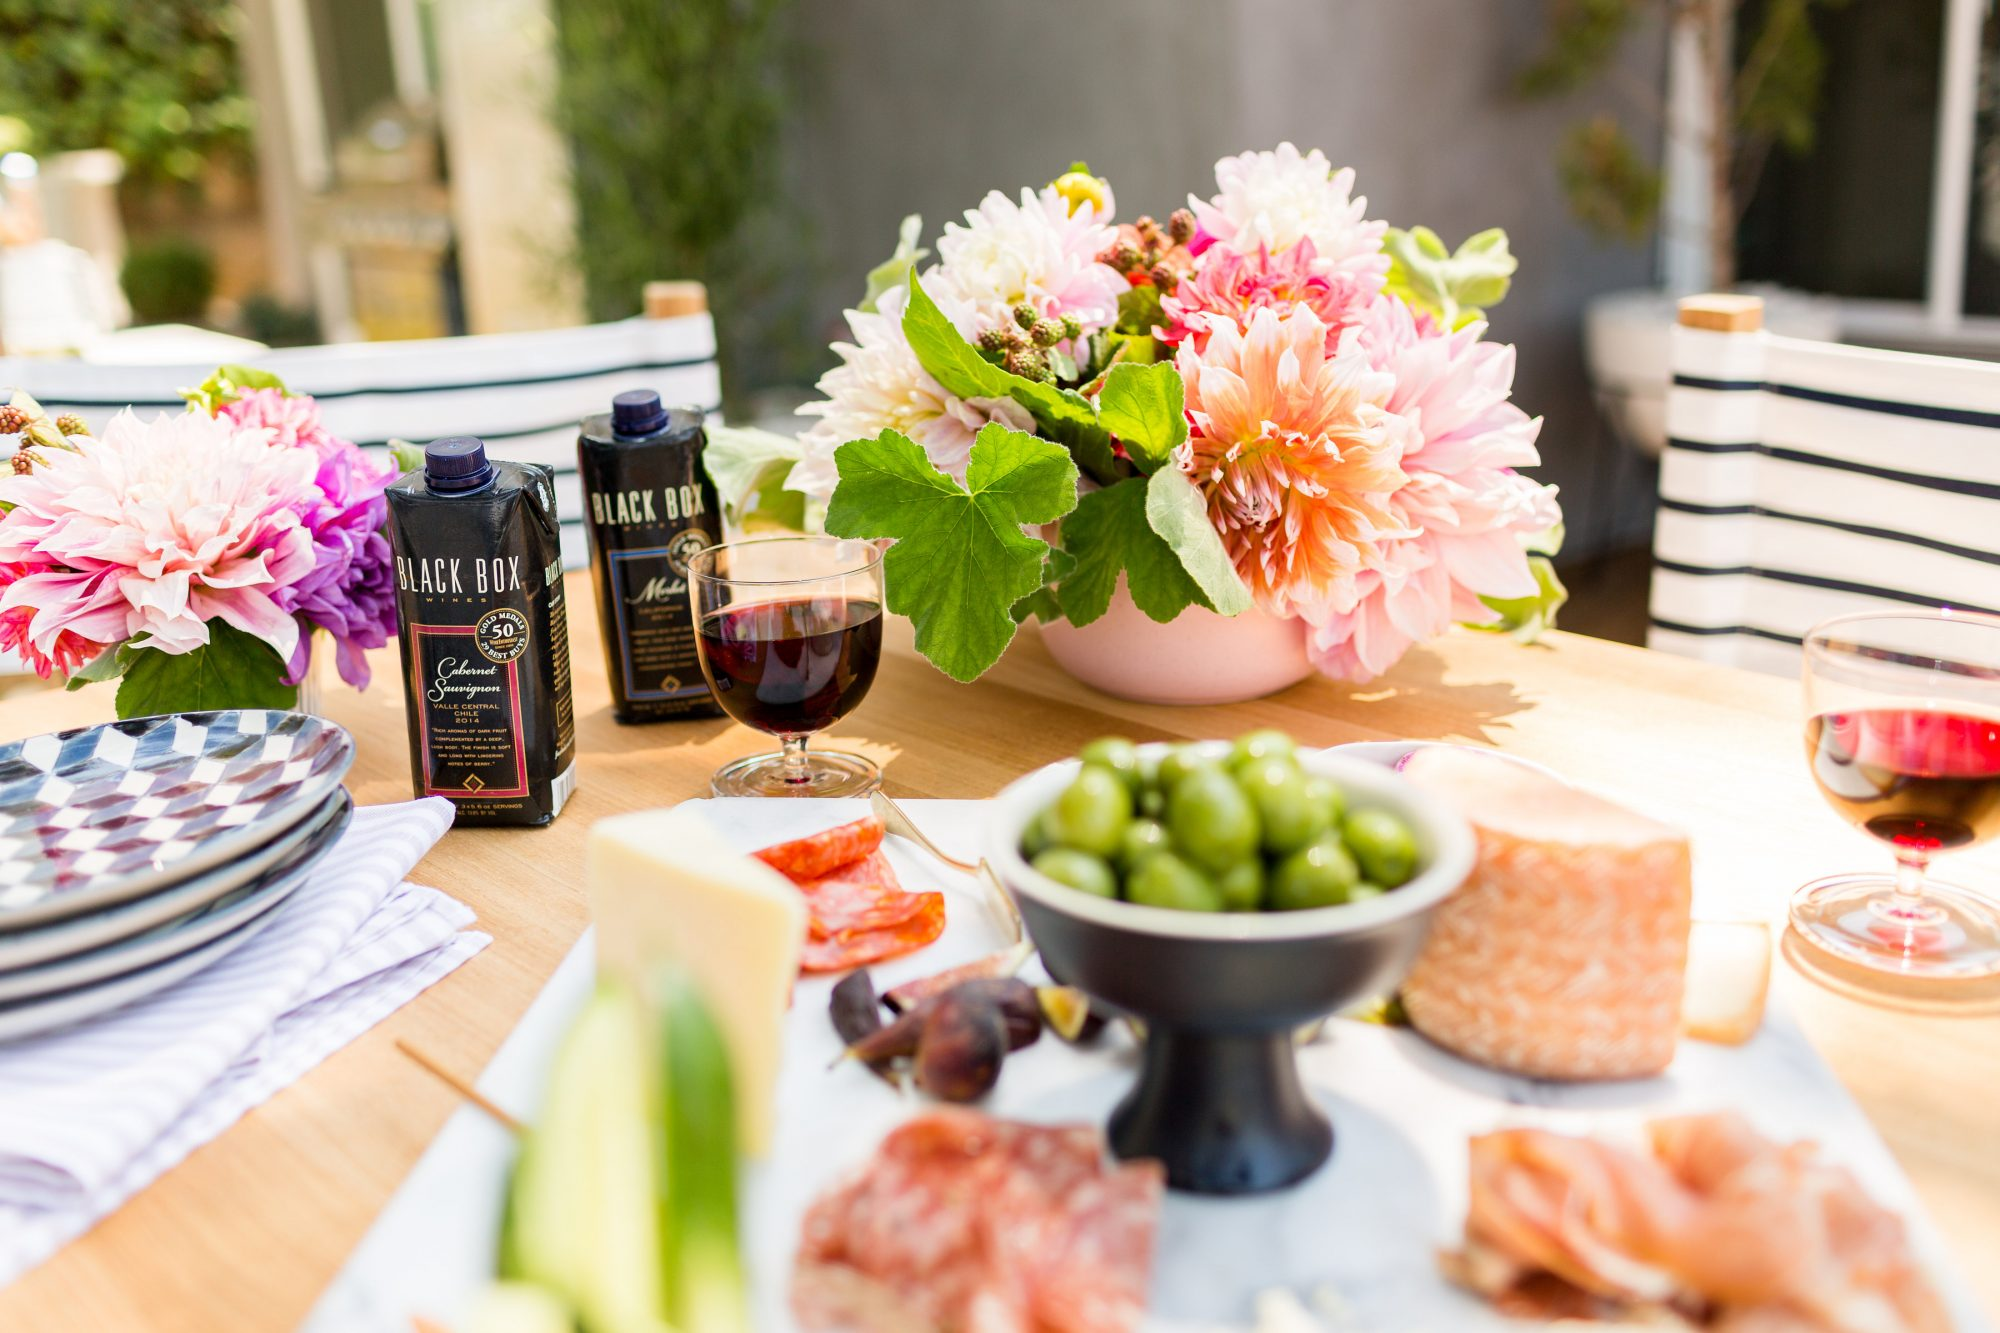 A bridal shower table by Emily Henderson, complete with flowers, wine, and charcuterie tray